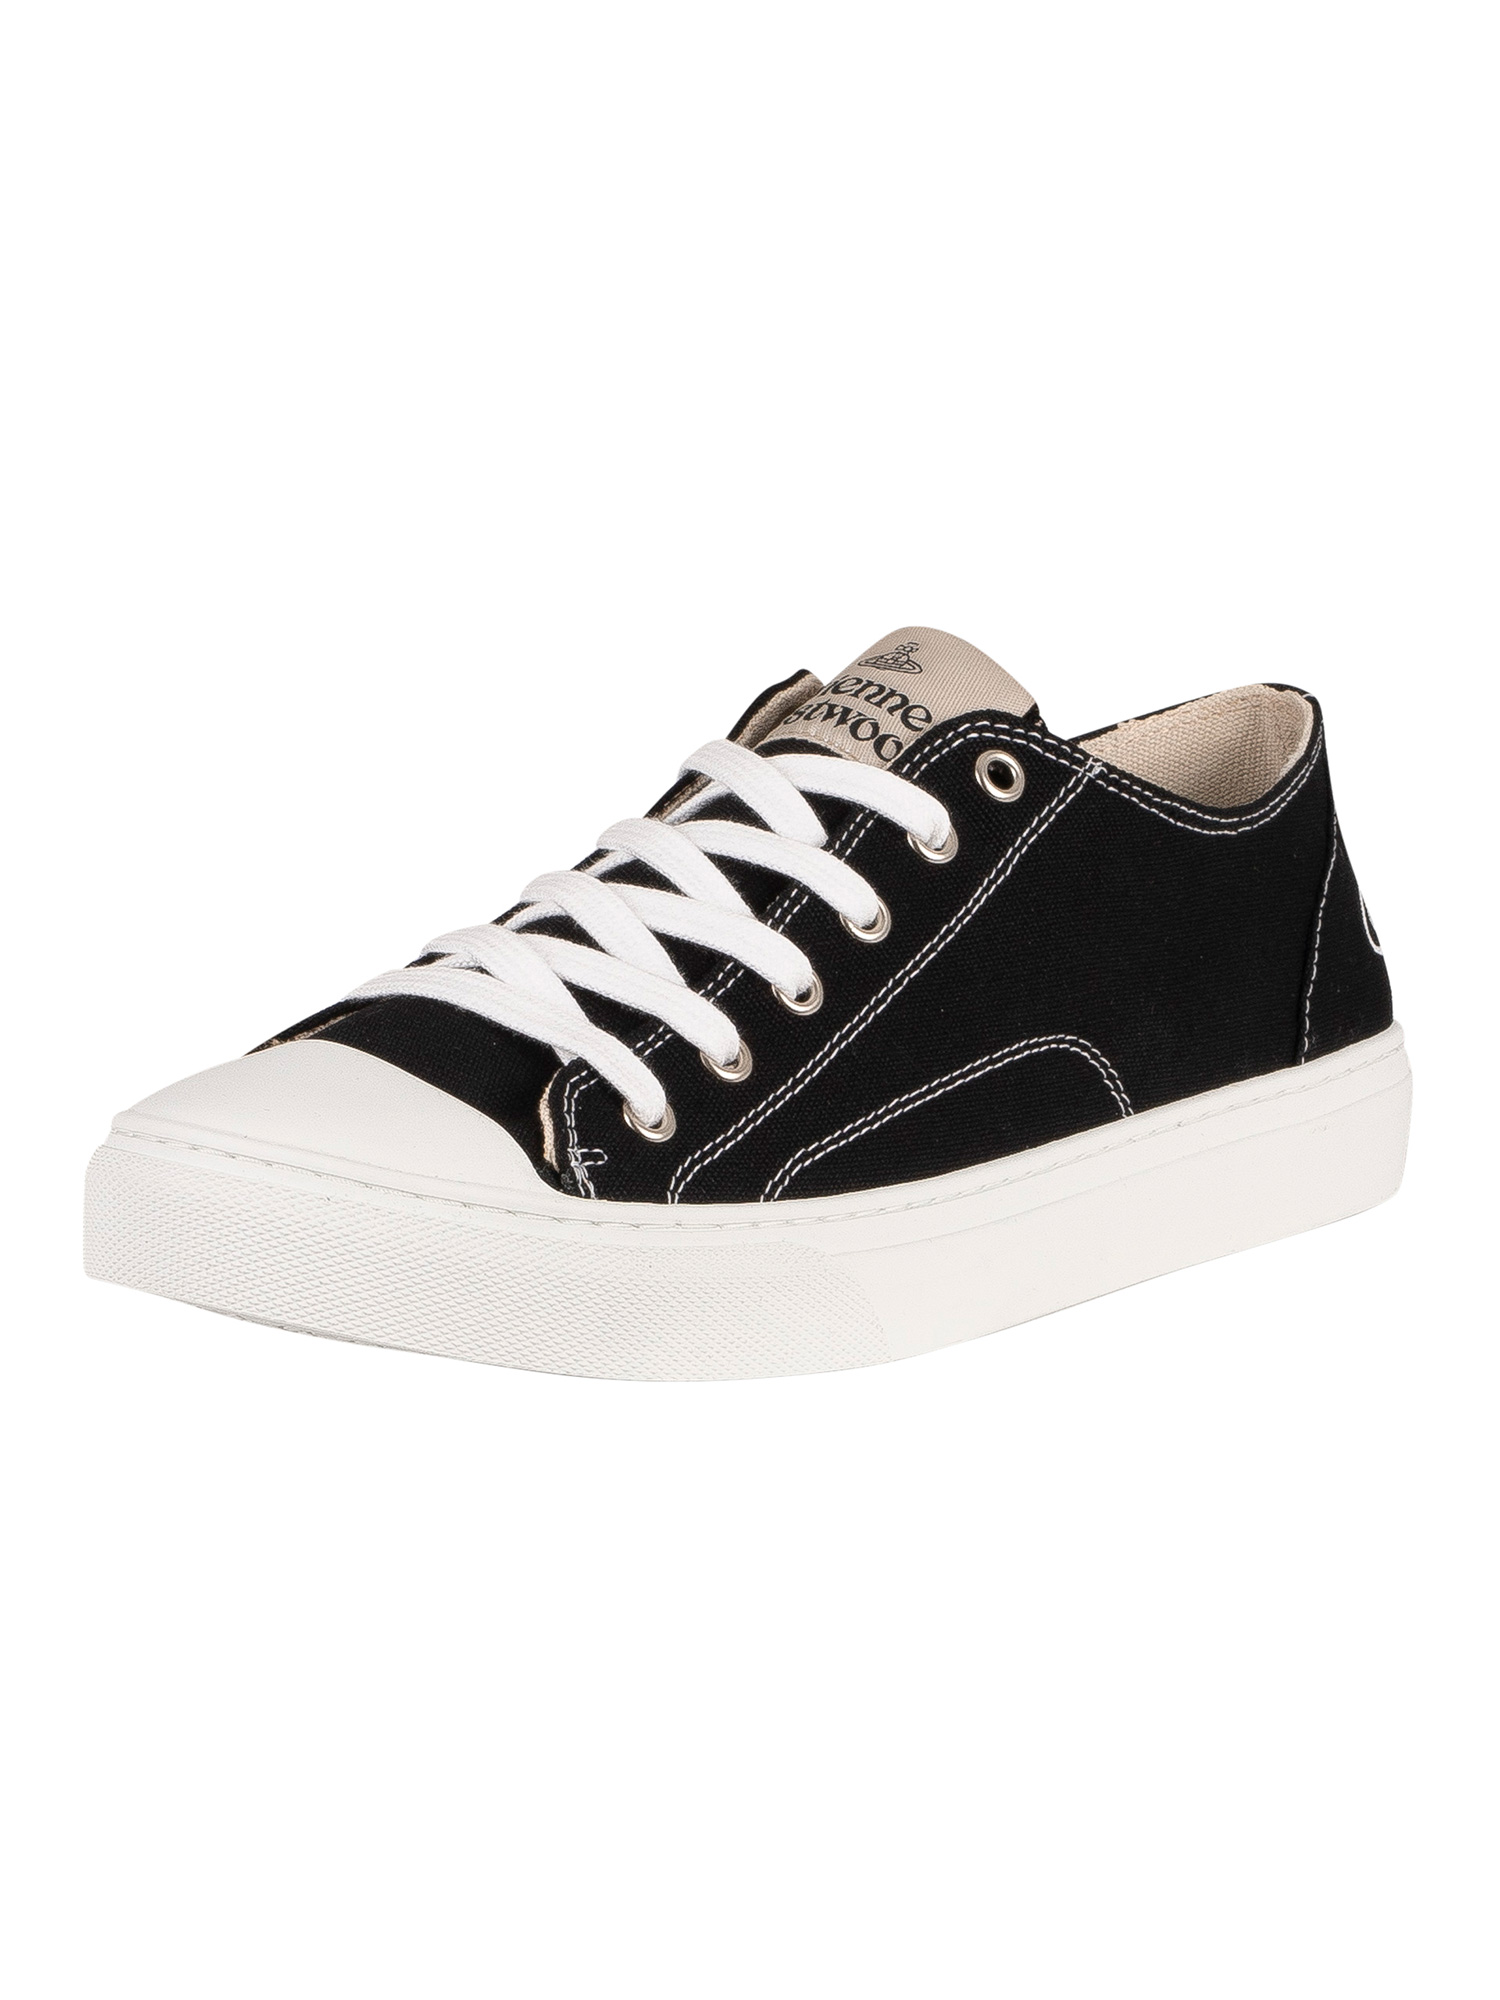 Plimsoll-Low-Top-Canvas-Trainers